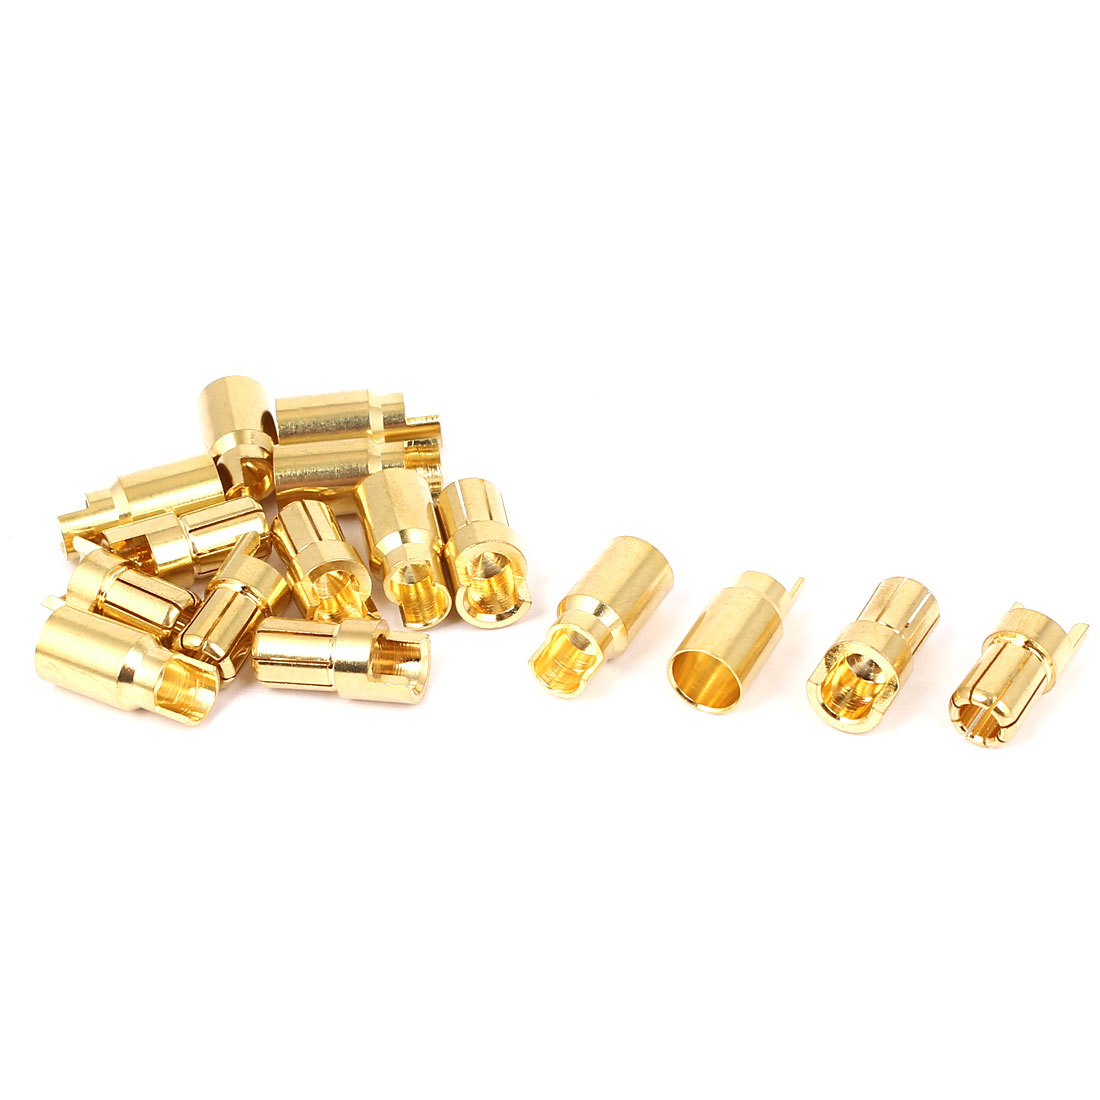 8 Pairs 6mm Gold Tone Metal Hemihedral Banana Female Male Connector for RC Helicopter